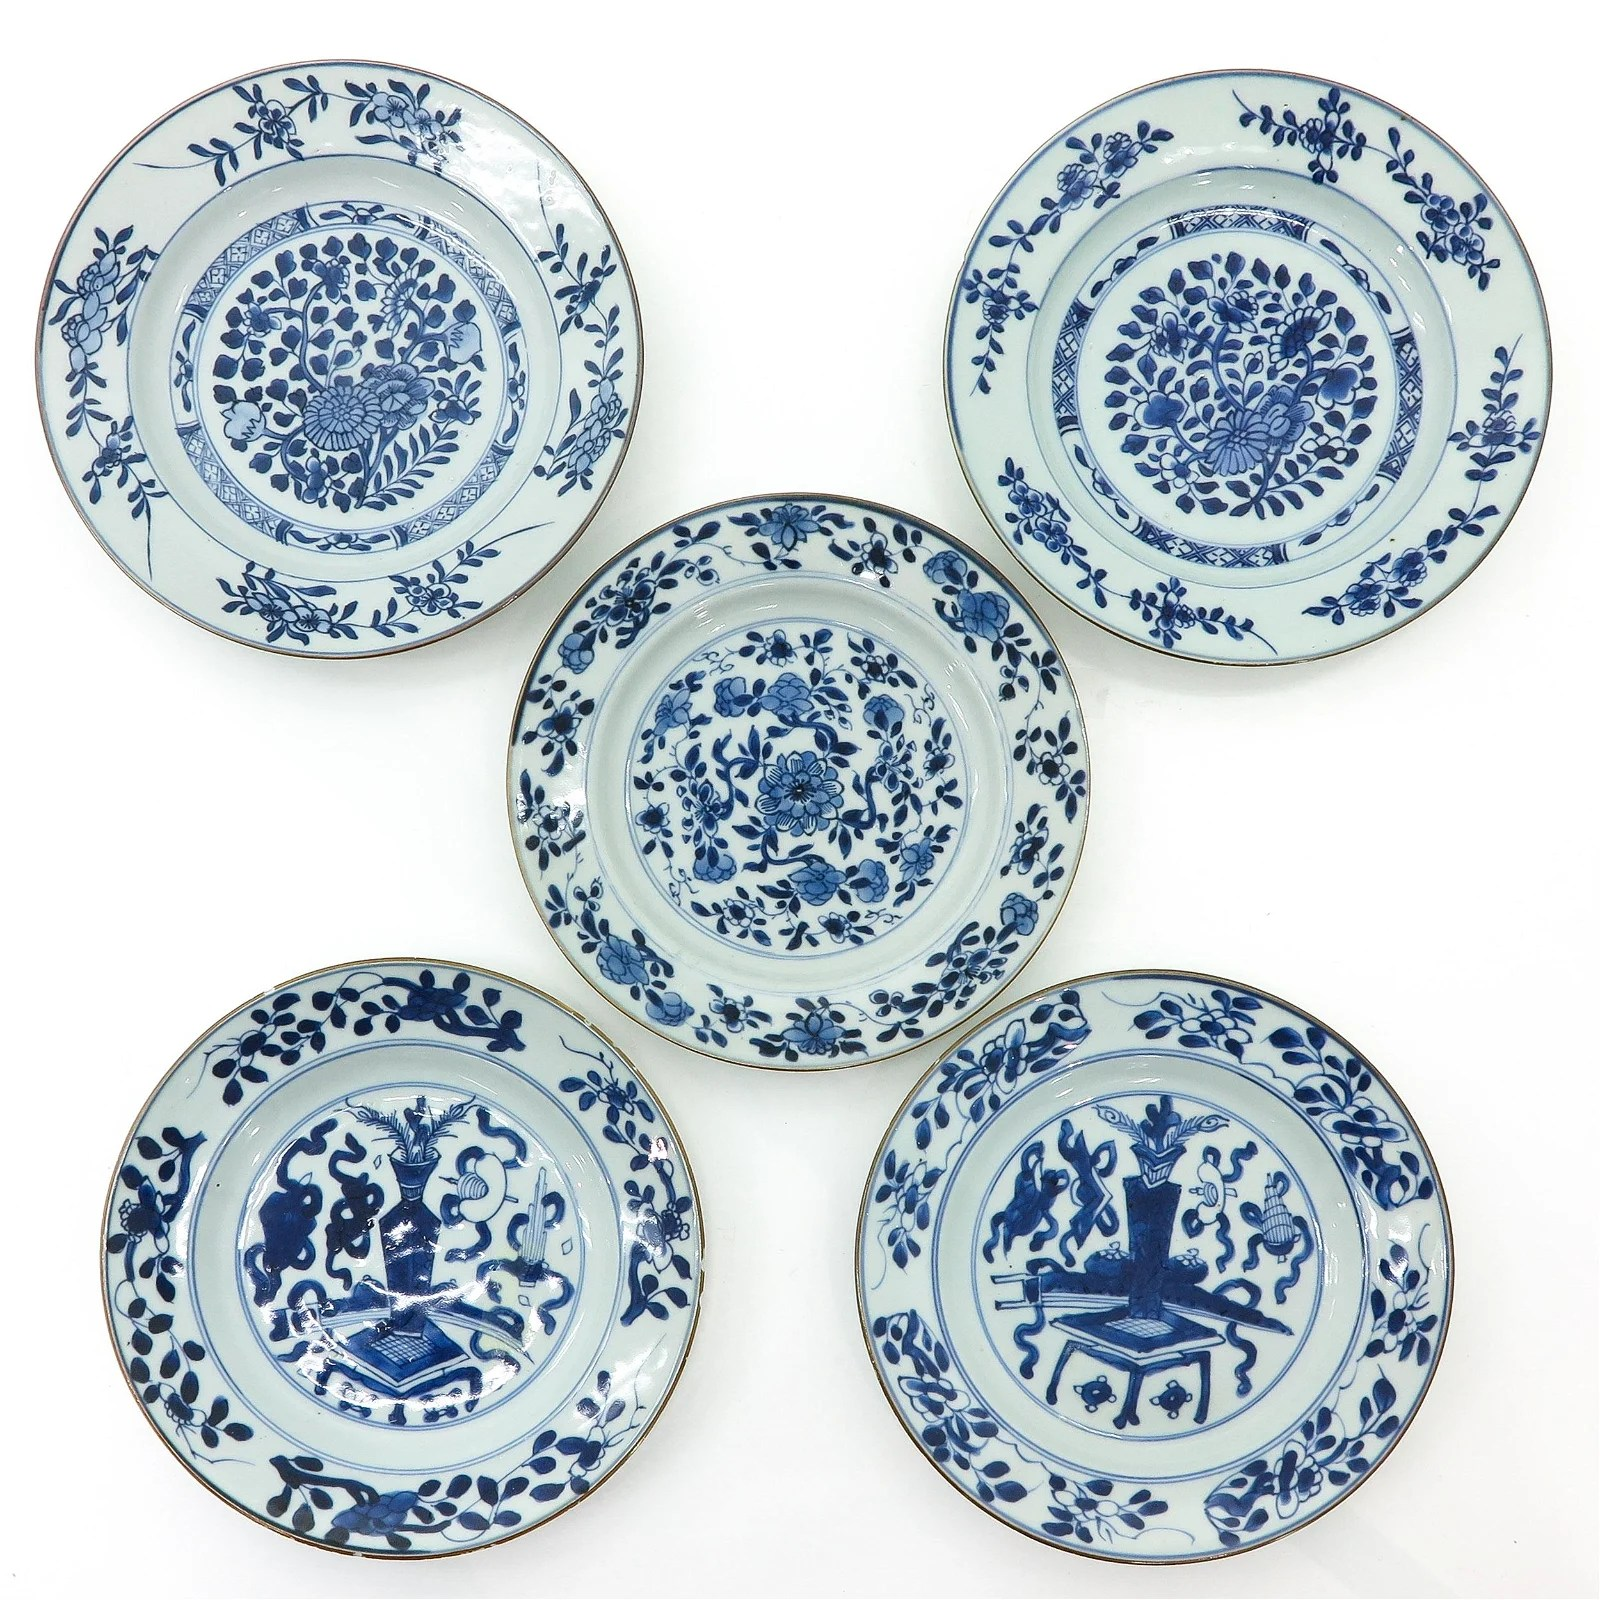 A Series of Five Chinese Blue and White Plates